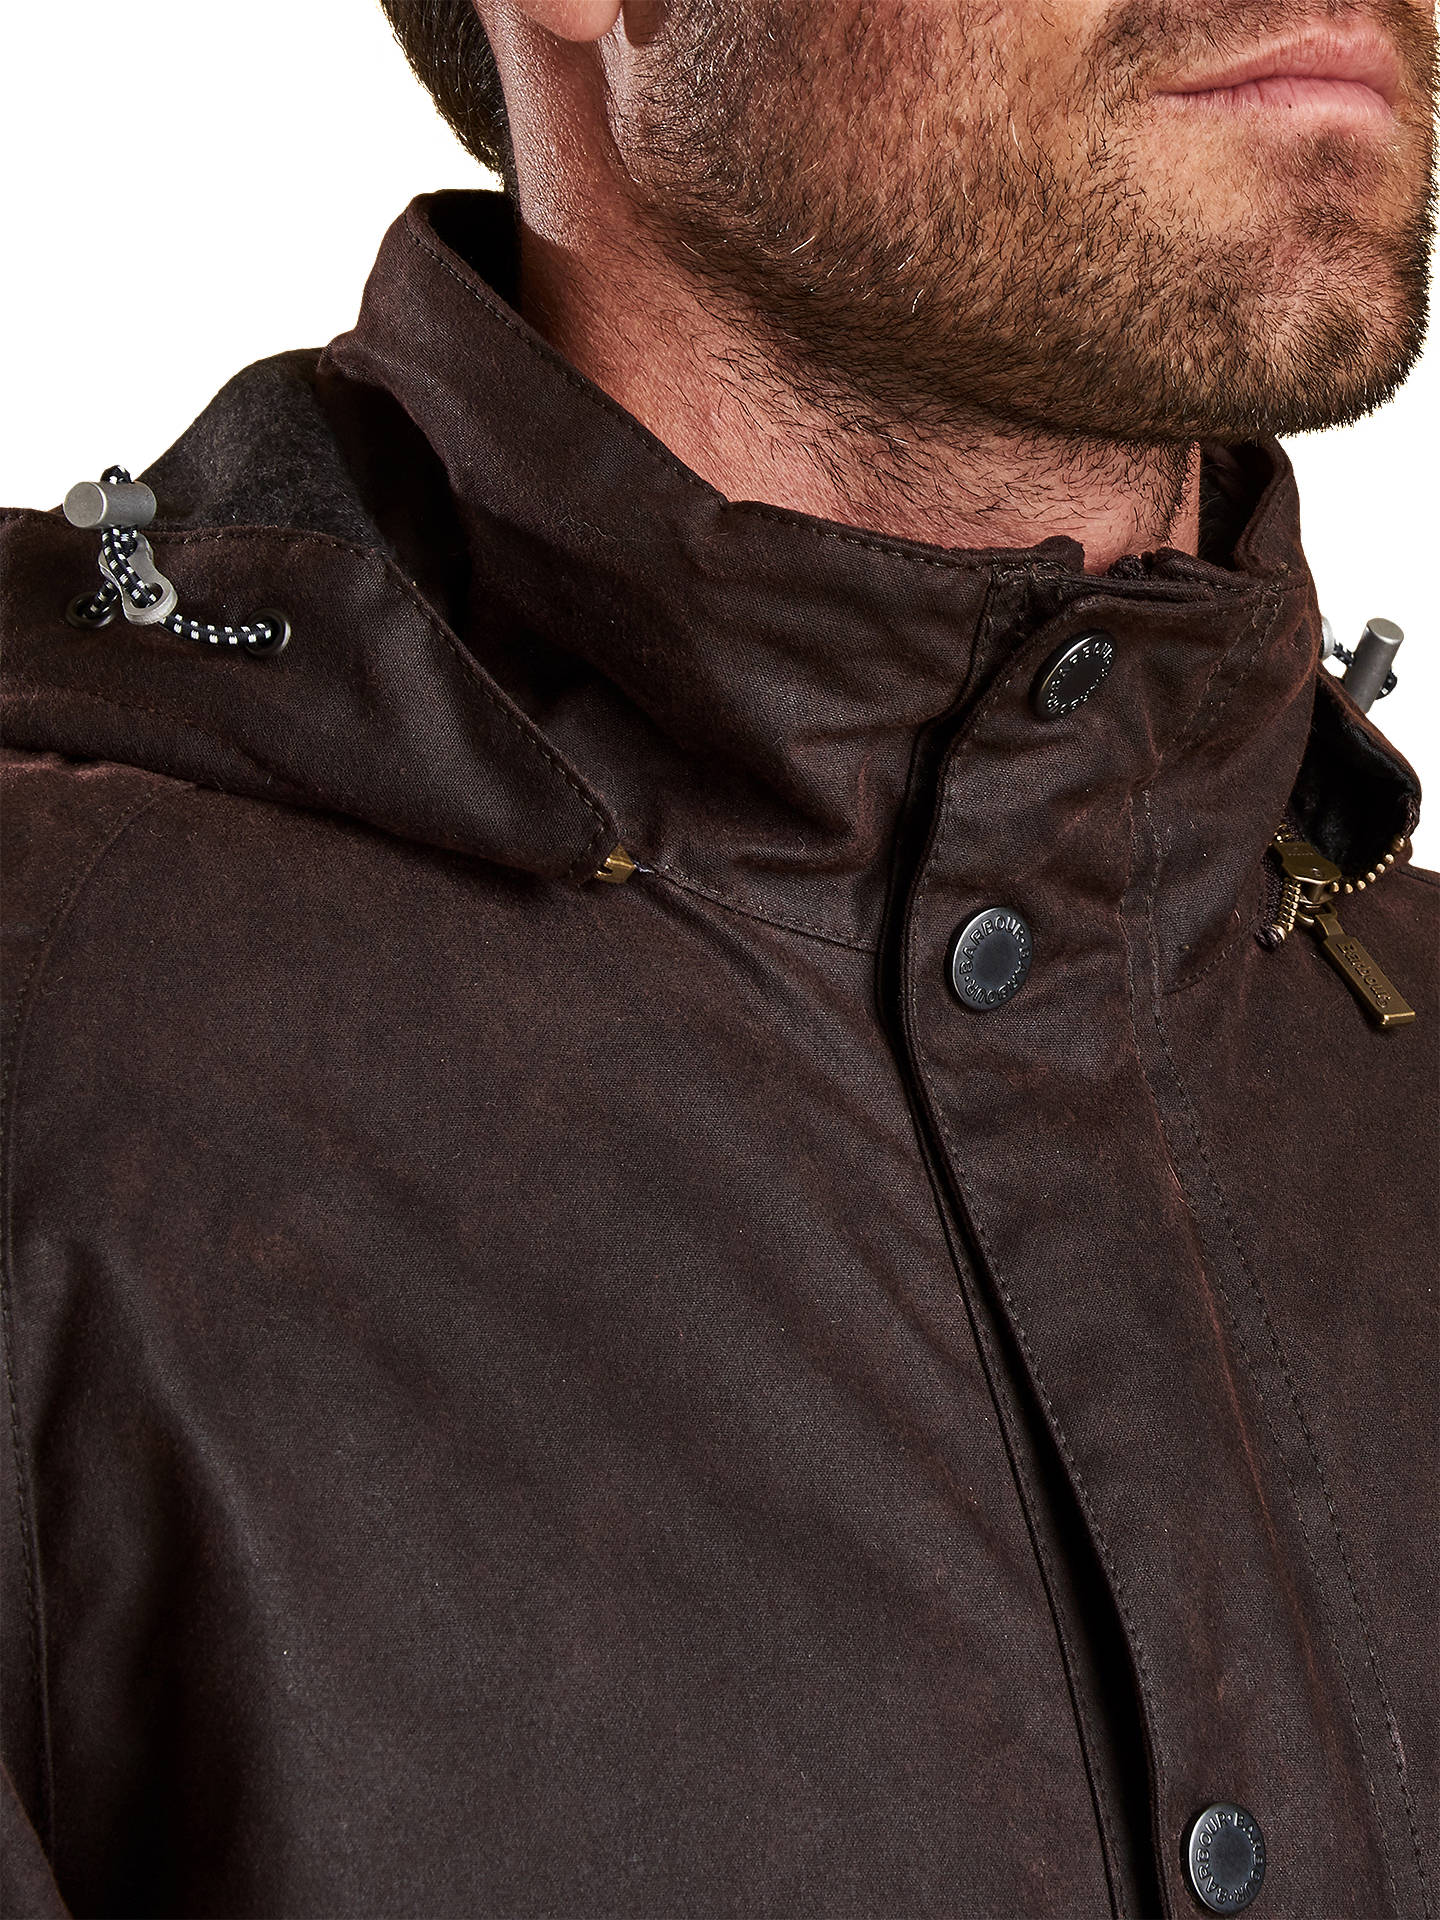 BuyBarbour Land Rover Defender Grinton Wax Jacket, Brown, XL Online at johnlewis.com